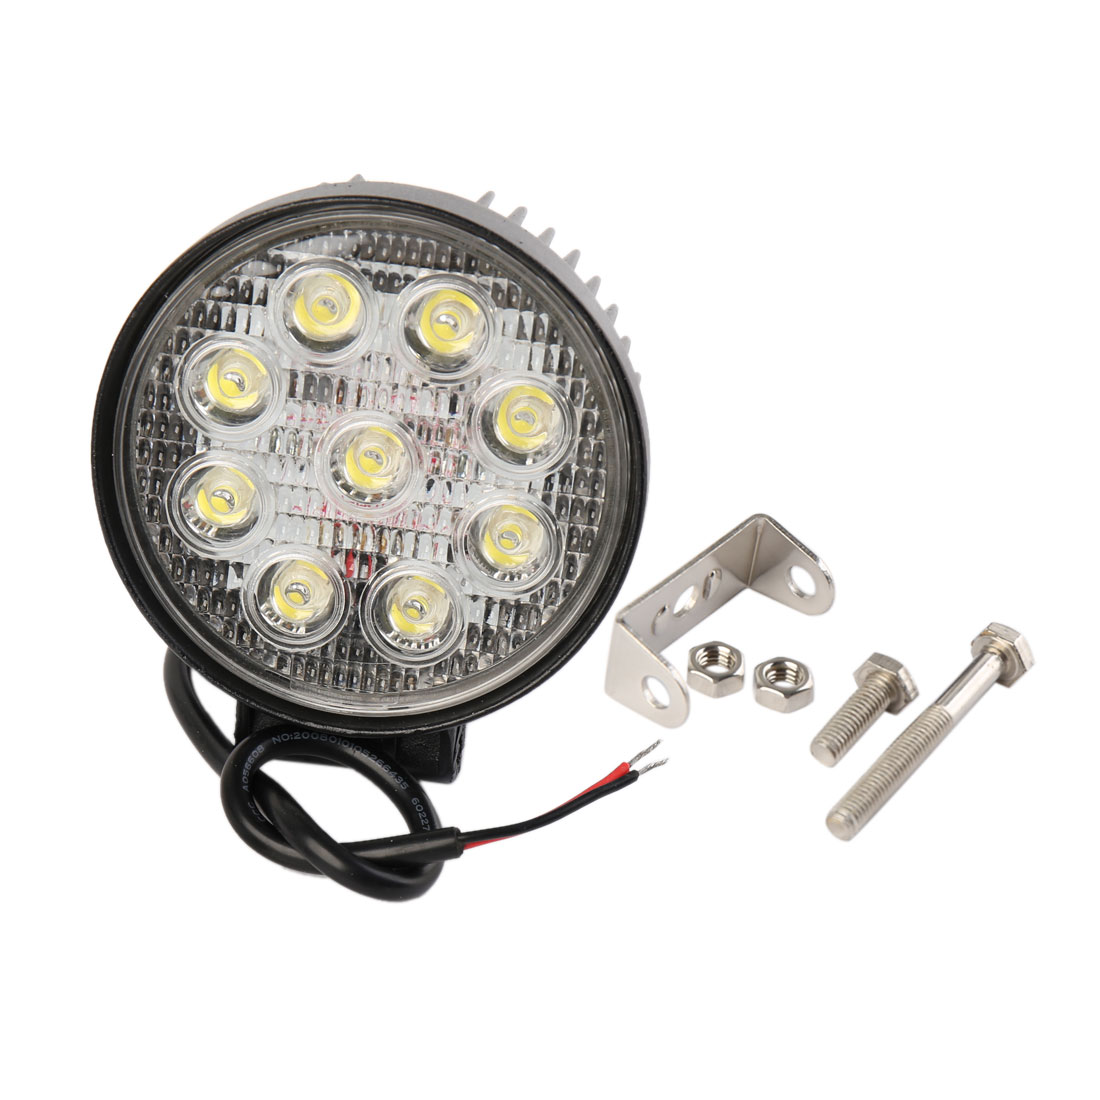 Round Shaped Black Metal Housing Car White 9 LED Bulb Spotlight Working Lamp Light 12V 27W